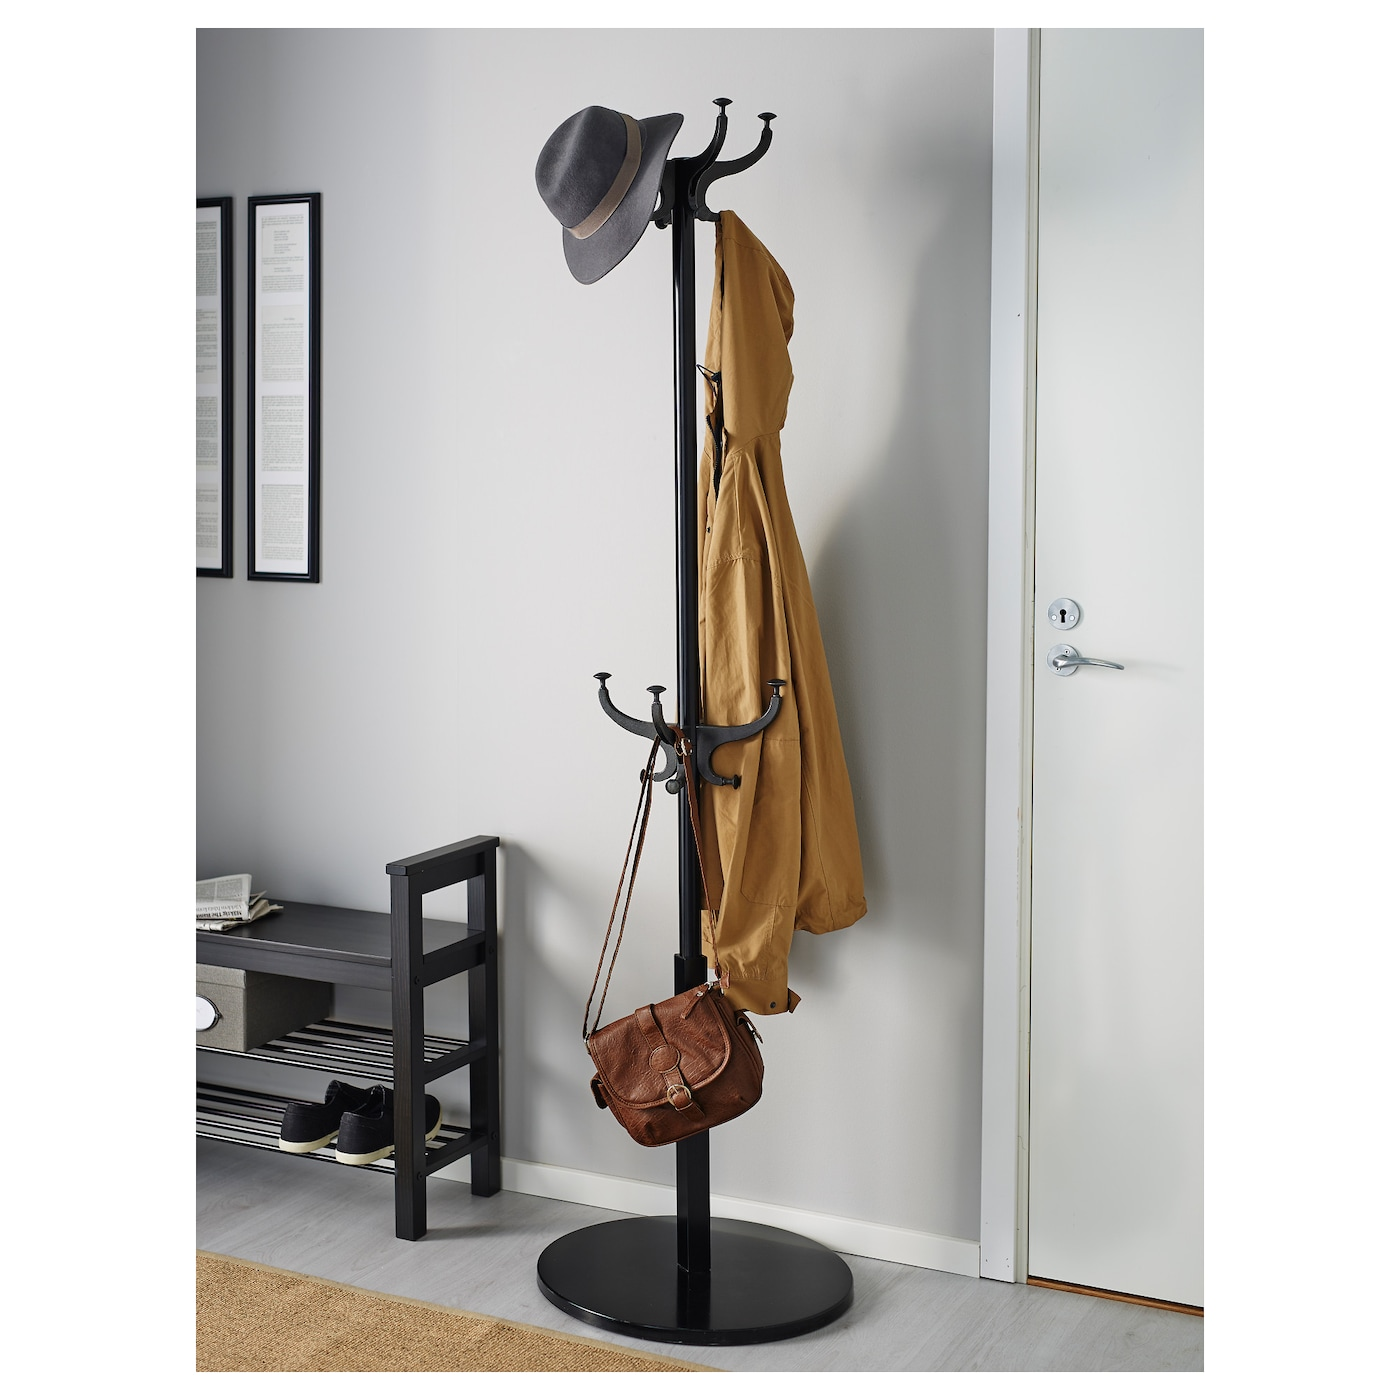 IKEA HEMNES hat and coat stand Also stands steady on an uneven floor since  the feet